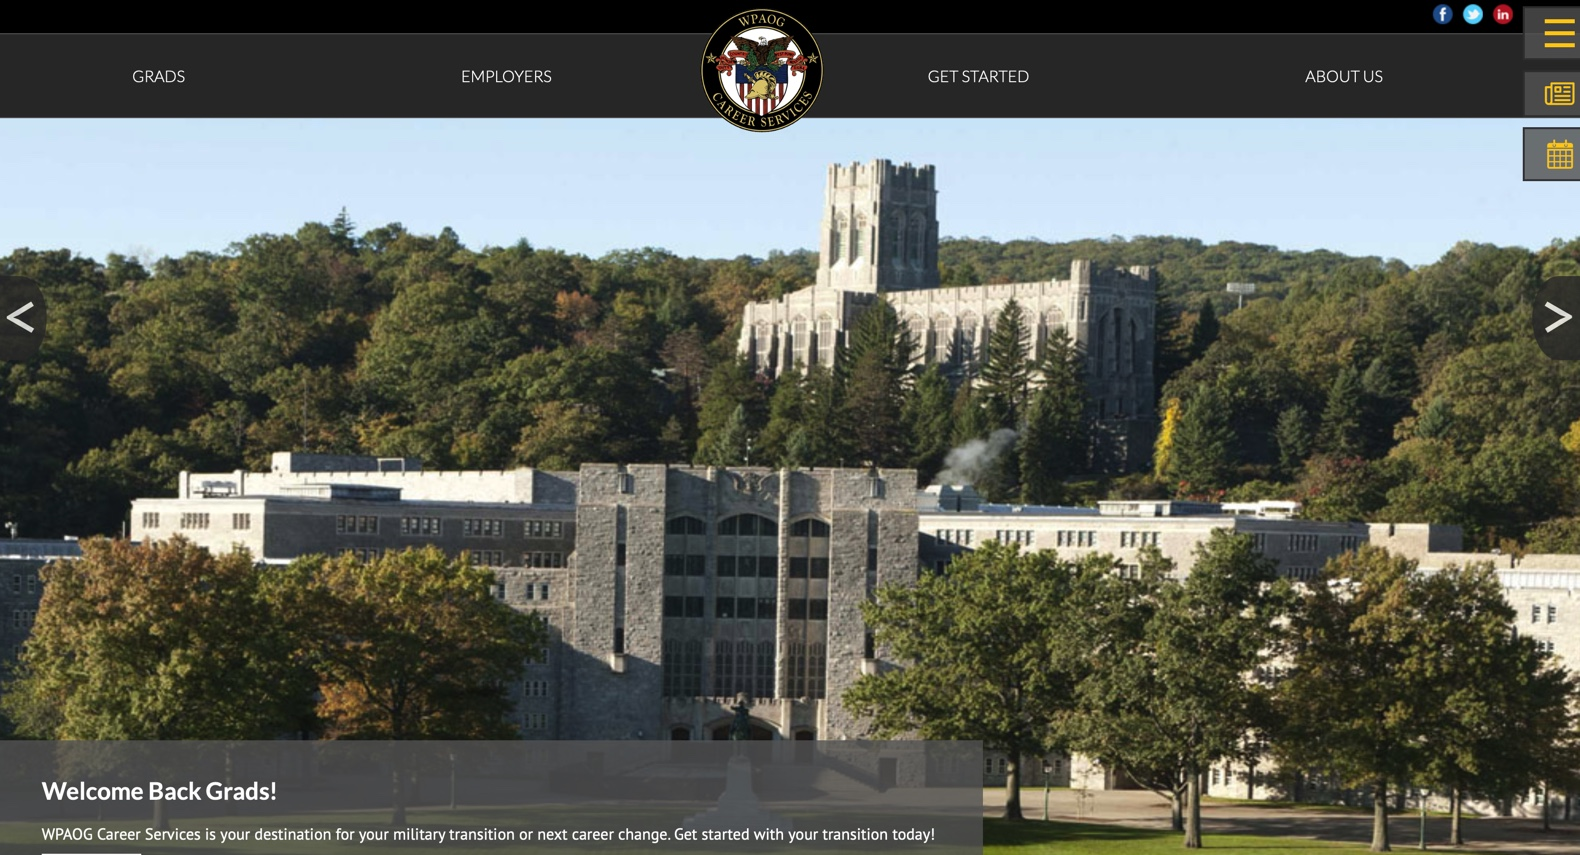 West Point Career Services Presentation